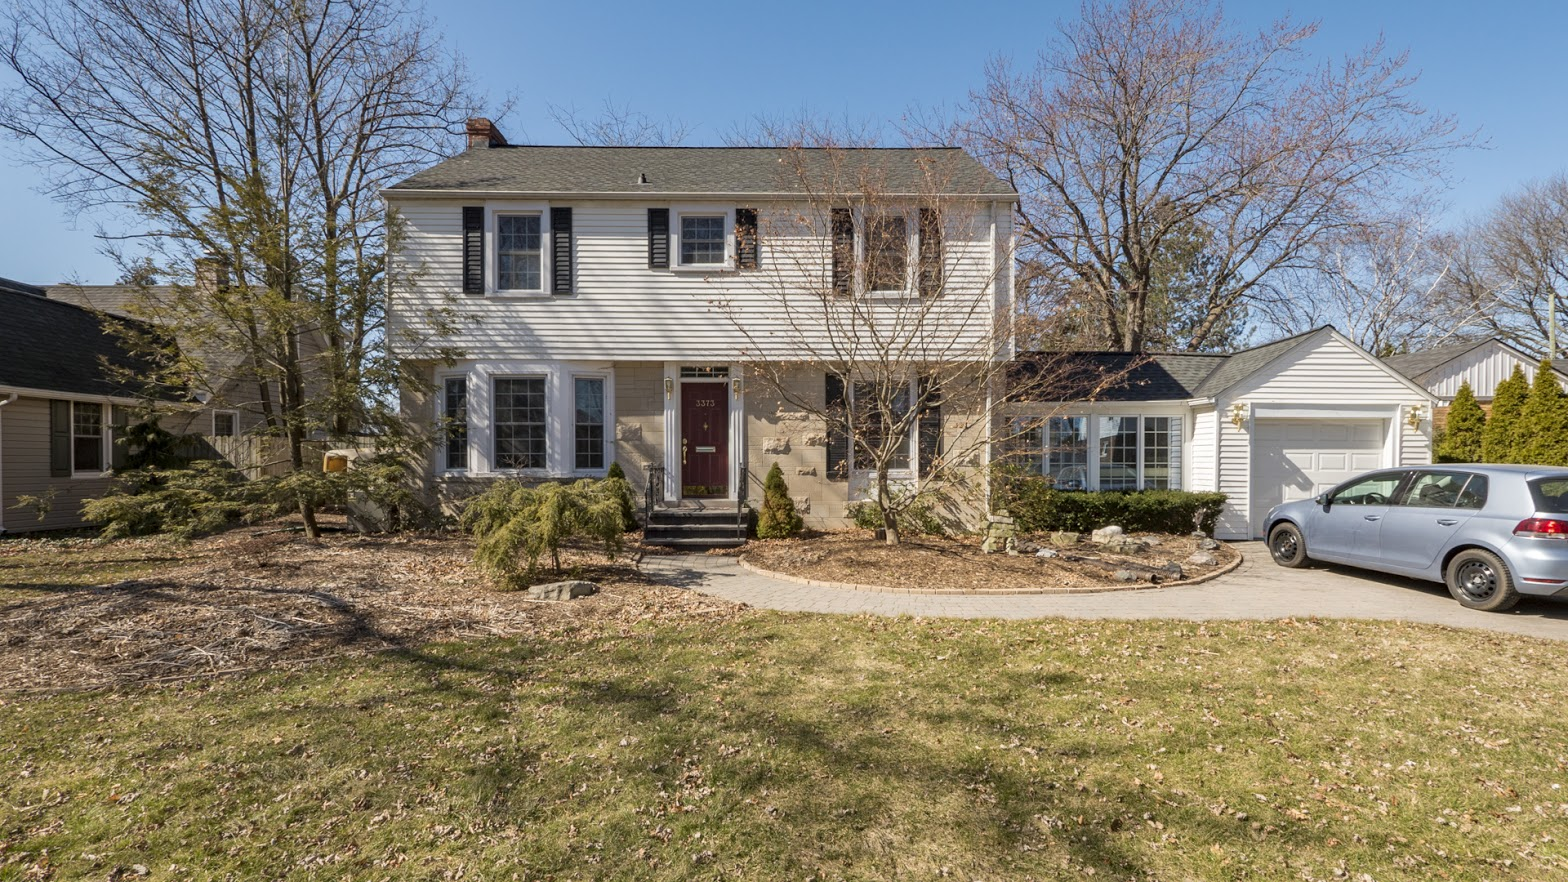 3373 church st south windsor home for sale whats happening our latest windsor home for sale at 3373 church st located in south windsor which offers 4 bedrooms 3 baths and a great amount of living space for solutioingenieria Gallery